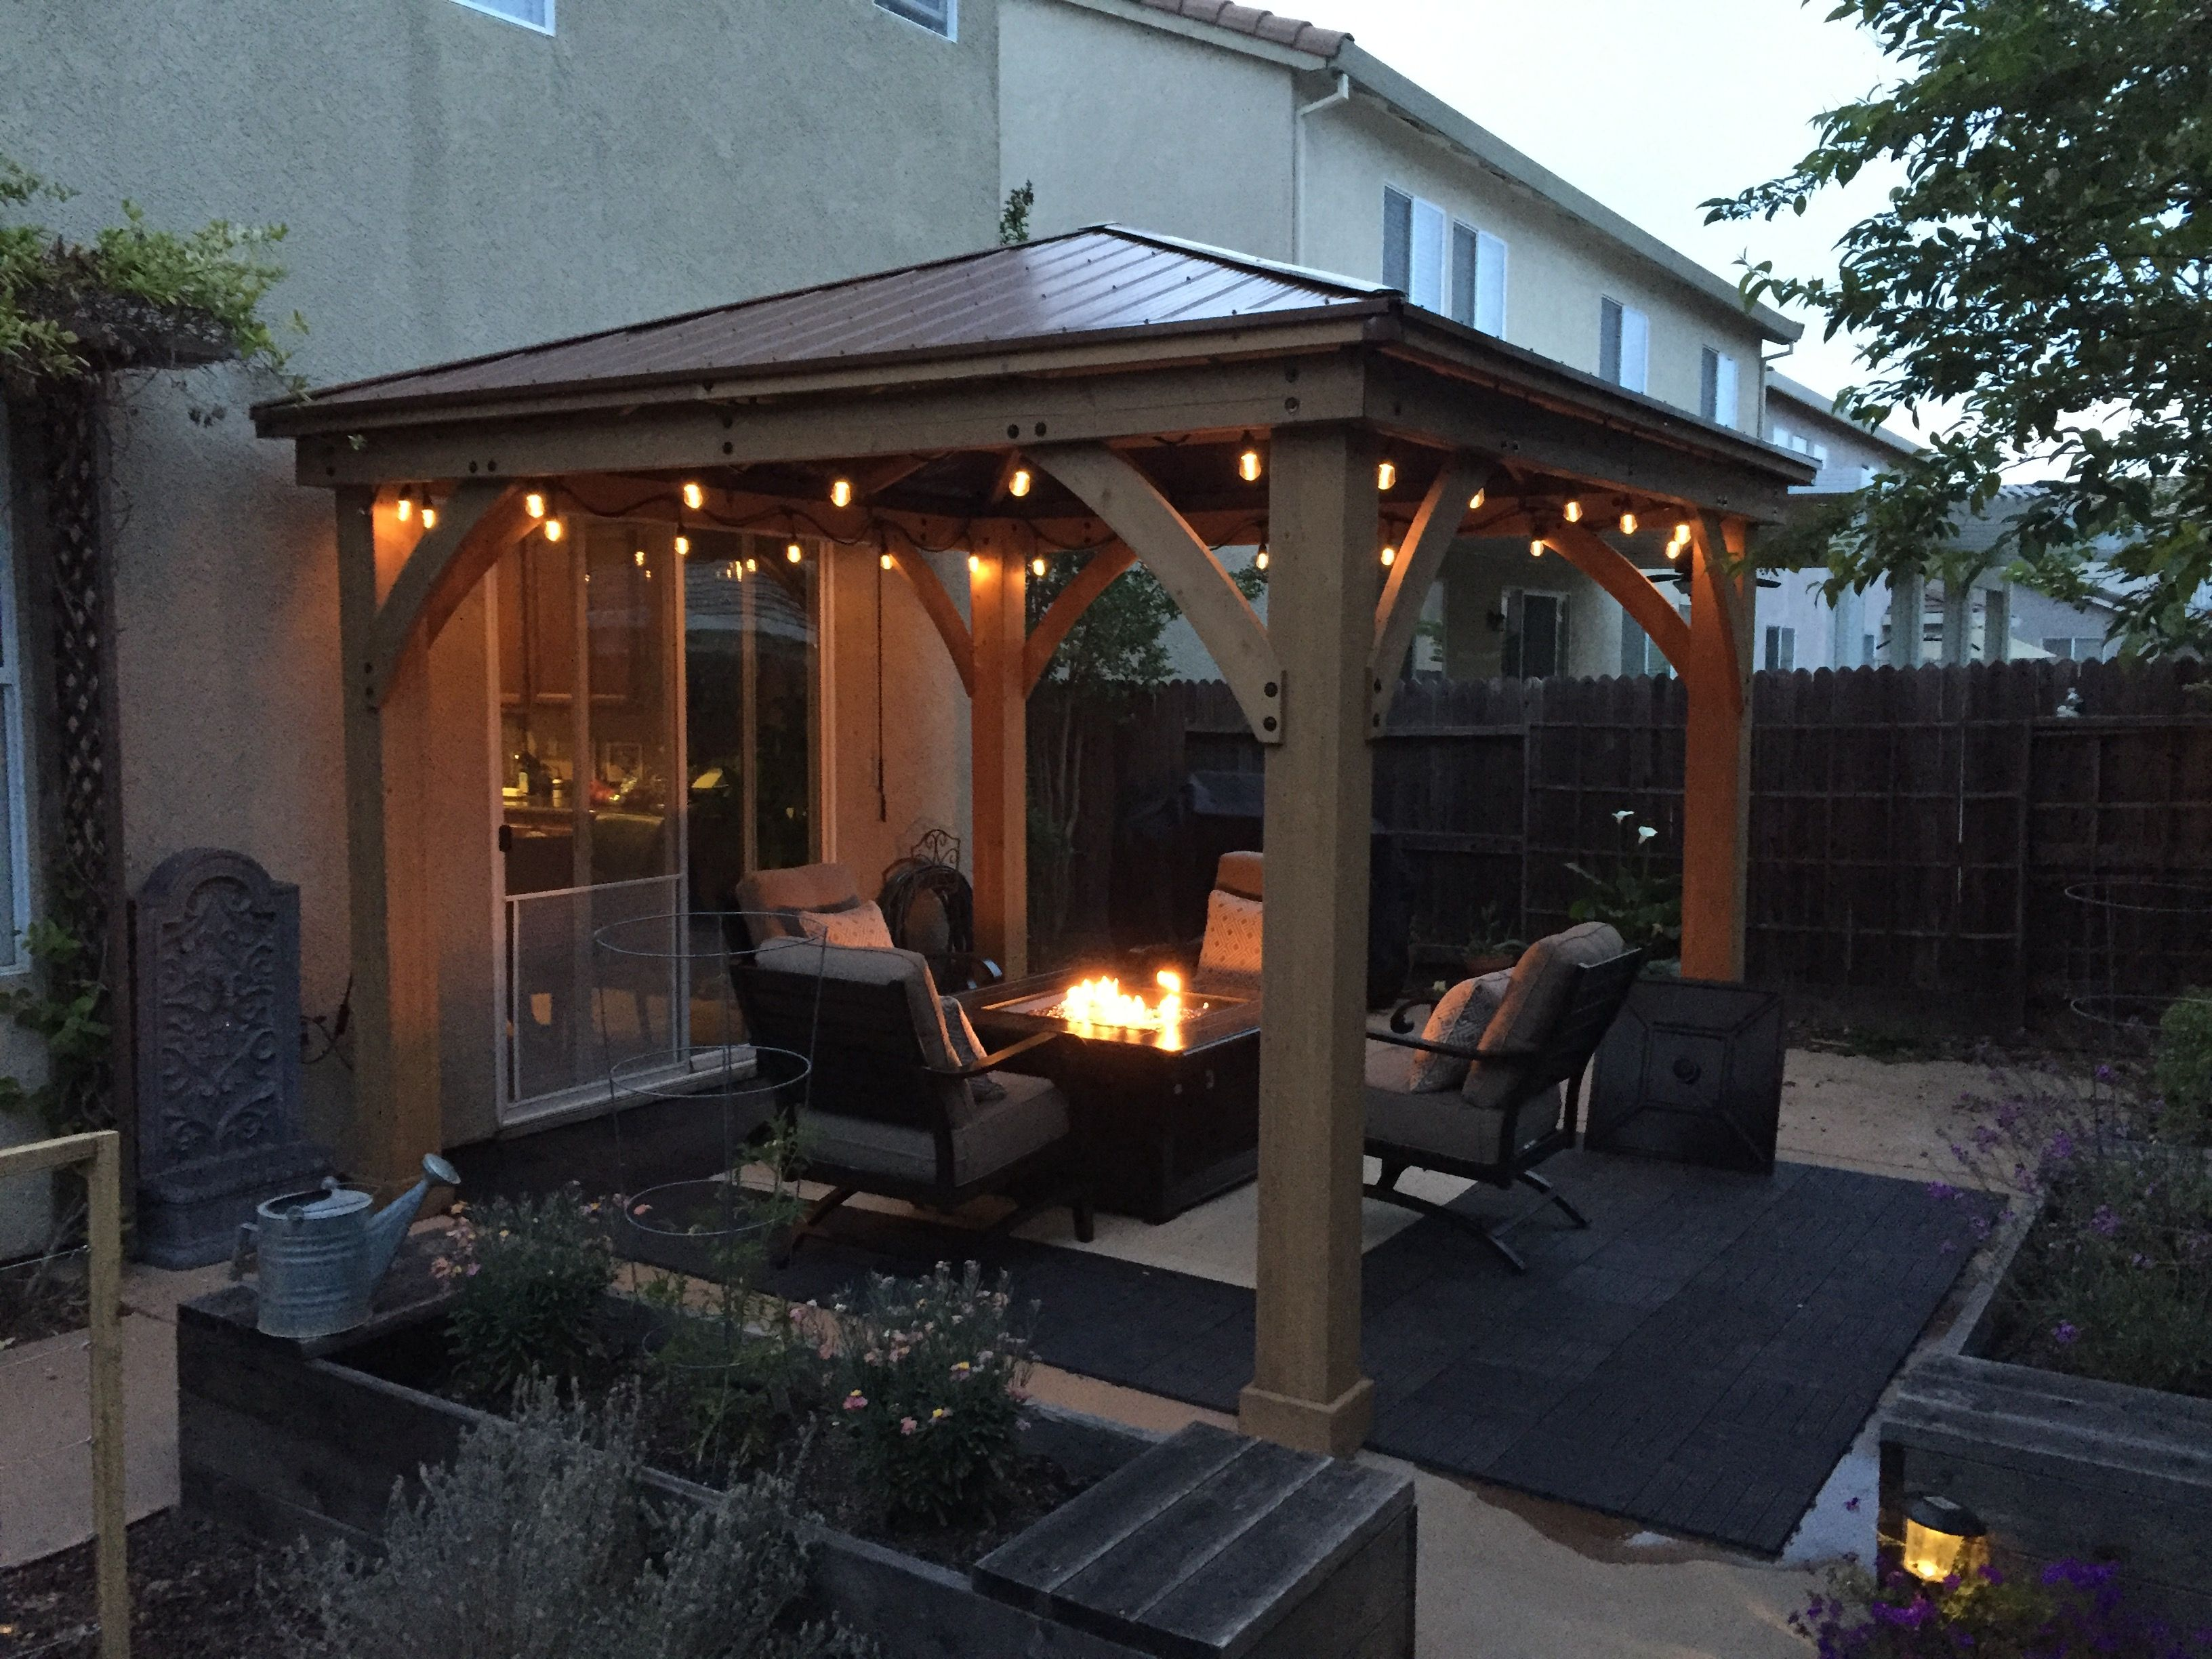 Yardistry 12x12 Cedar Gazebo From Costco This Thing Is Amazing Adds A New Dimension To Your Backyard I Love It Backyard Gazebo Backyard Patio Gazebo